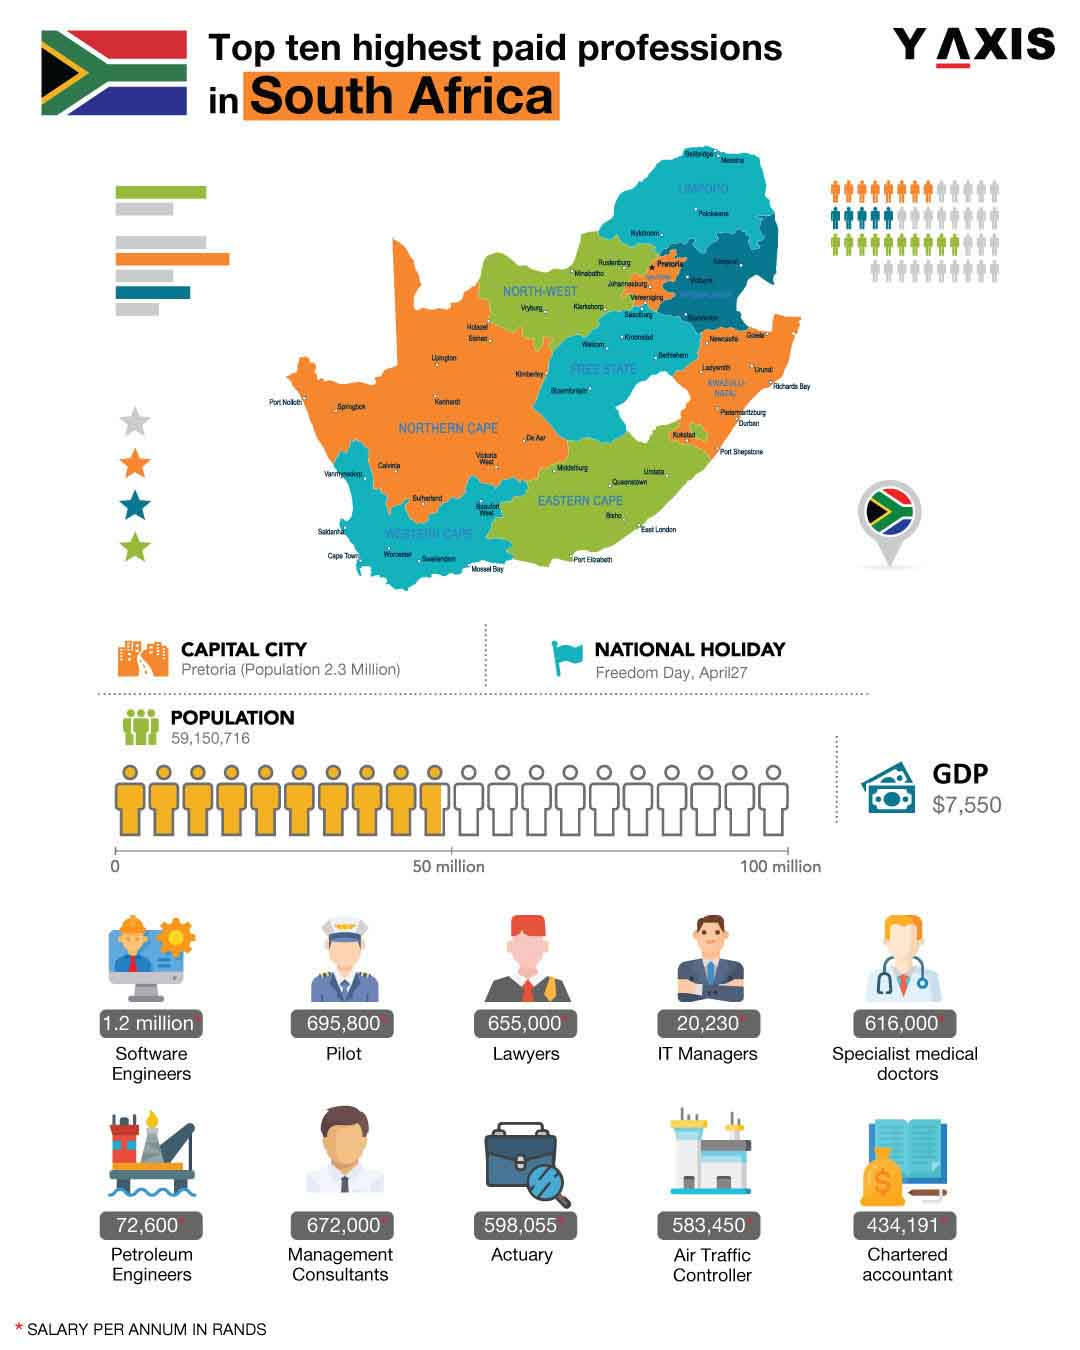 Highest paid professions in South Africa